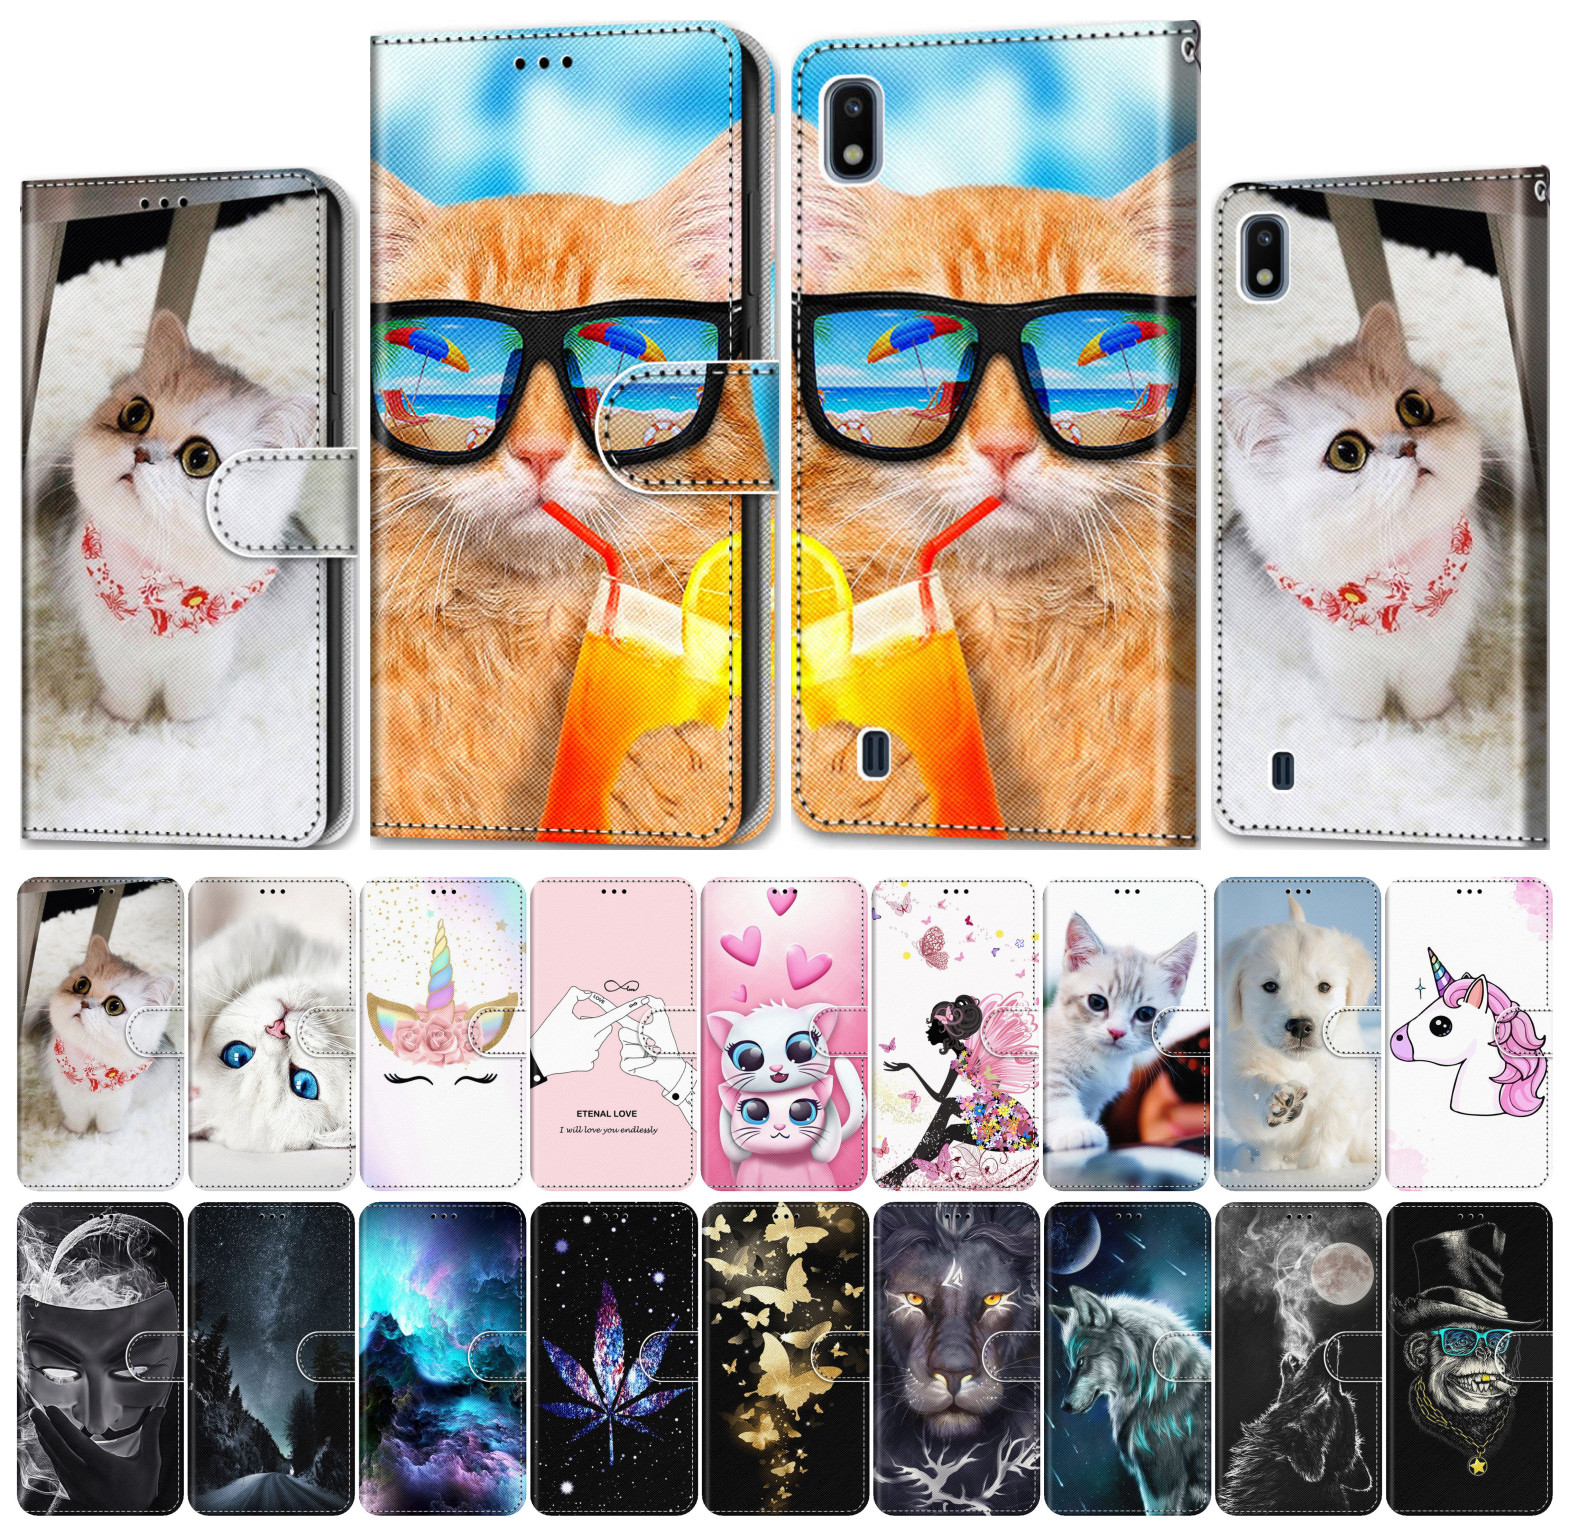 For <font><b>Case</b></font> <font><b>Samsung</b></font> <font><b>Galaxy</b></font> A50 A500 A510 <font><b>A520</b></font> <font><b>A5</b></font> 2015 2016 2017 Phone Wallet Leather Cover Phone <font><b>Case</b></font> Tiger Wolf Lion Cat Dog V08F image